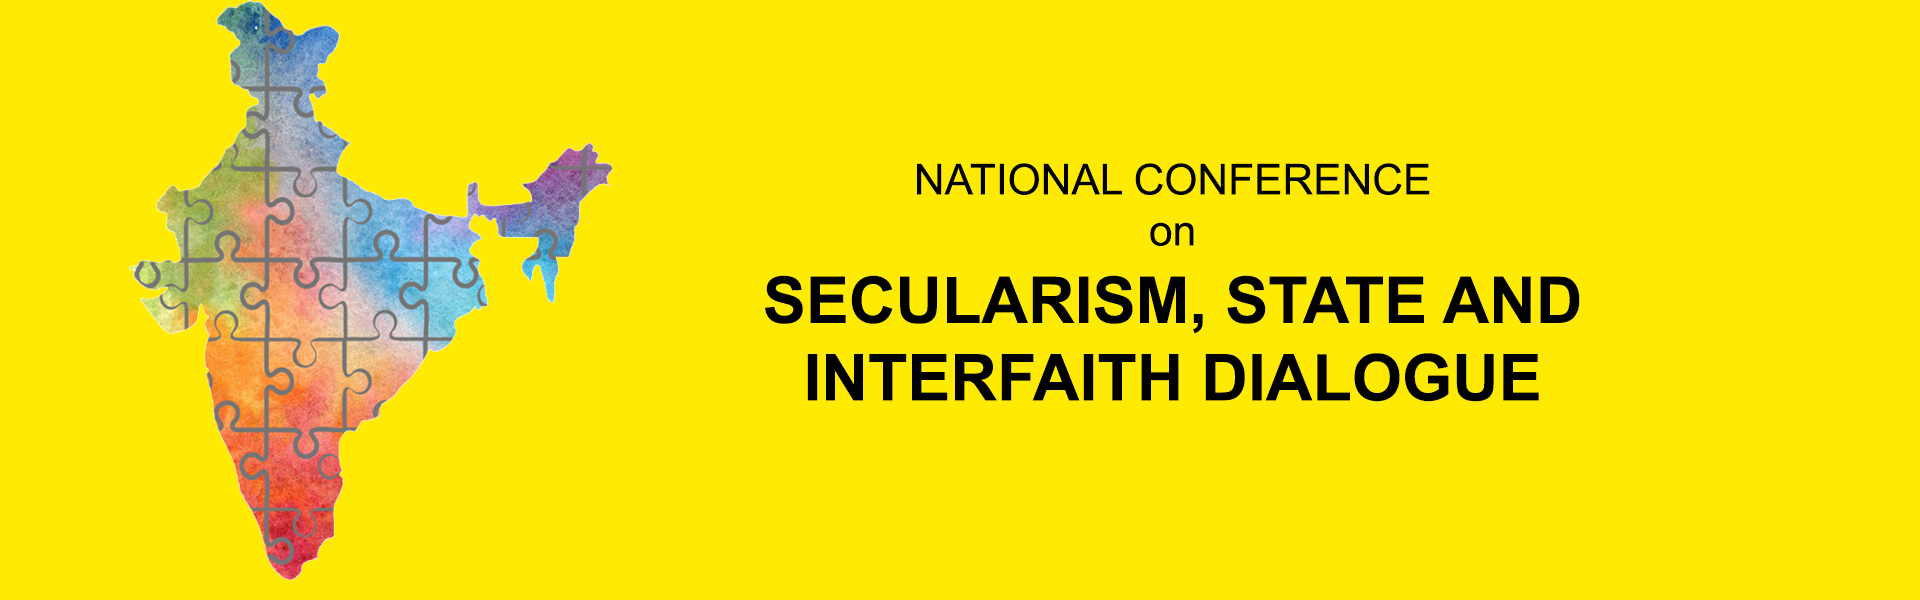 MPI Alumnus Co-convenes Conference on Secularism, State and Interfaith Dialogue in India